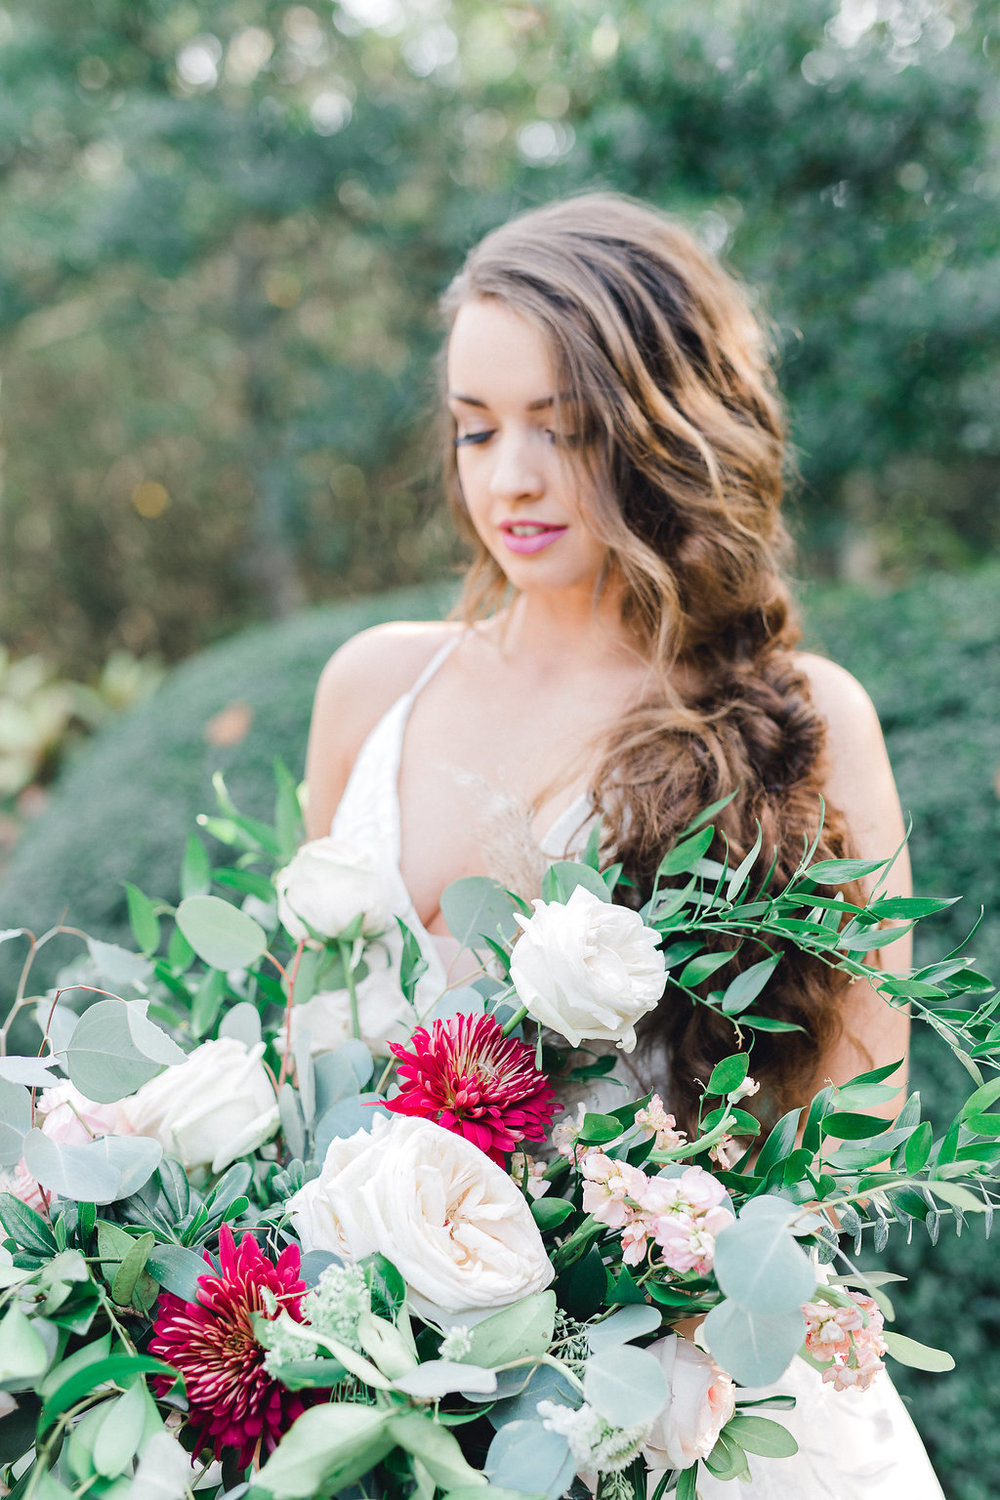 savannah-florist-savannah-bridal-shop-savannah-wedding-dresses-ivory-and-beau-savannah-bridal-boutique-blush-by-hayley-paige-fleur-de-lis-floral-designer-savannah-georgia.JPG